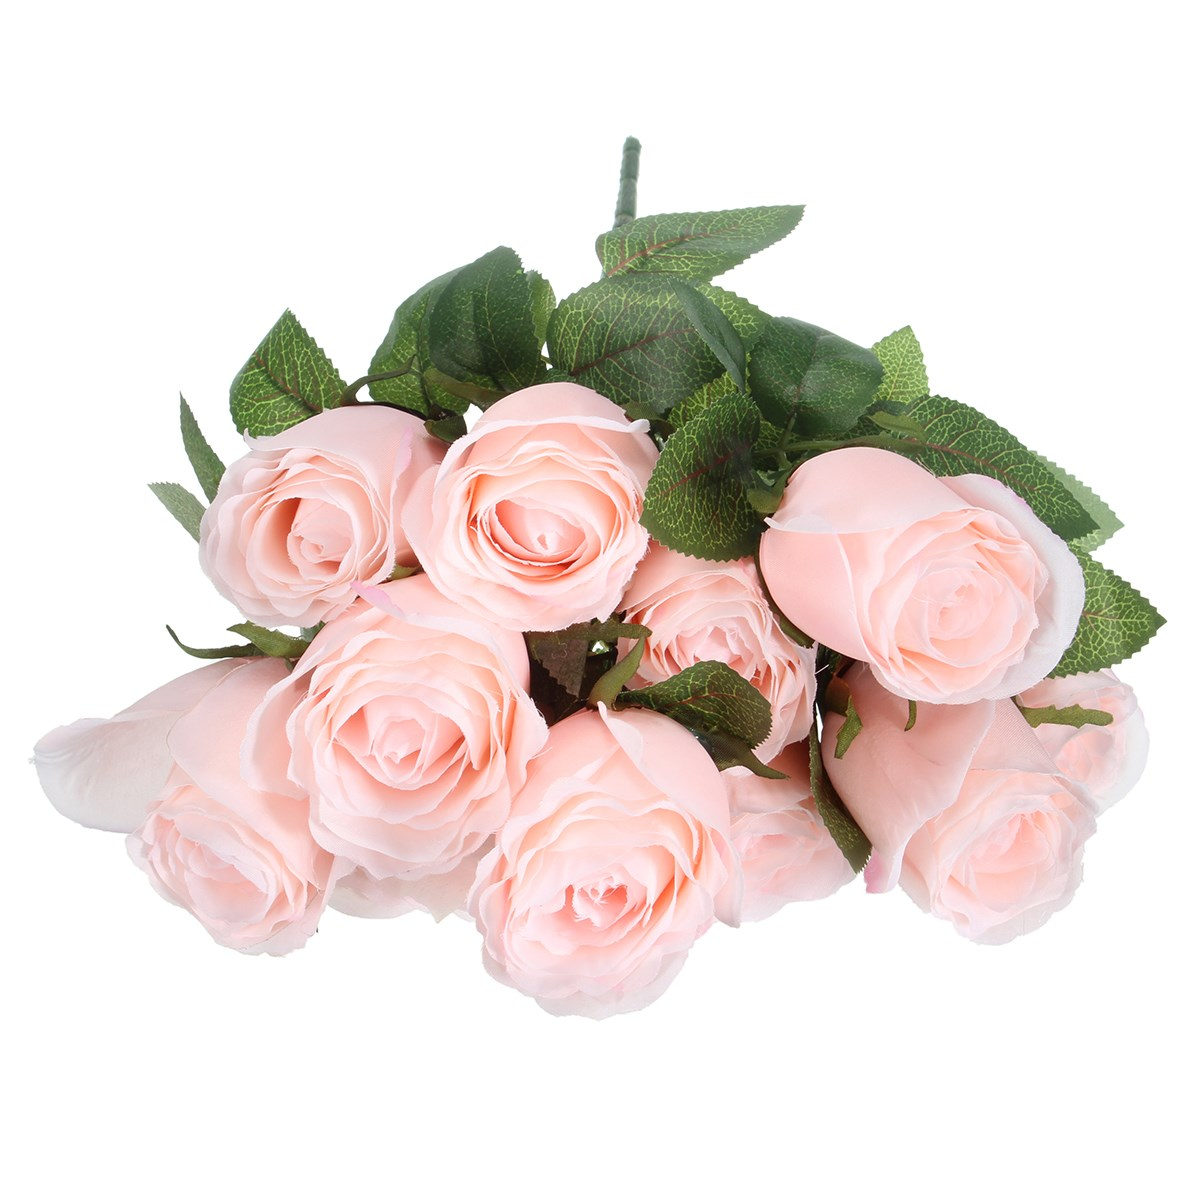 11 Head Pale Pink Roses Banquet Simulation Flower Leaves Silk